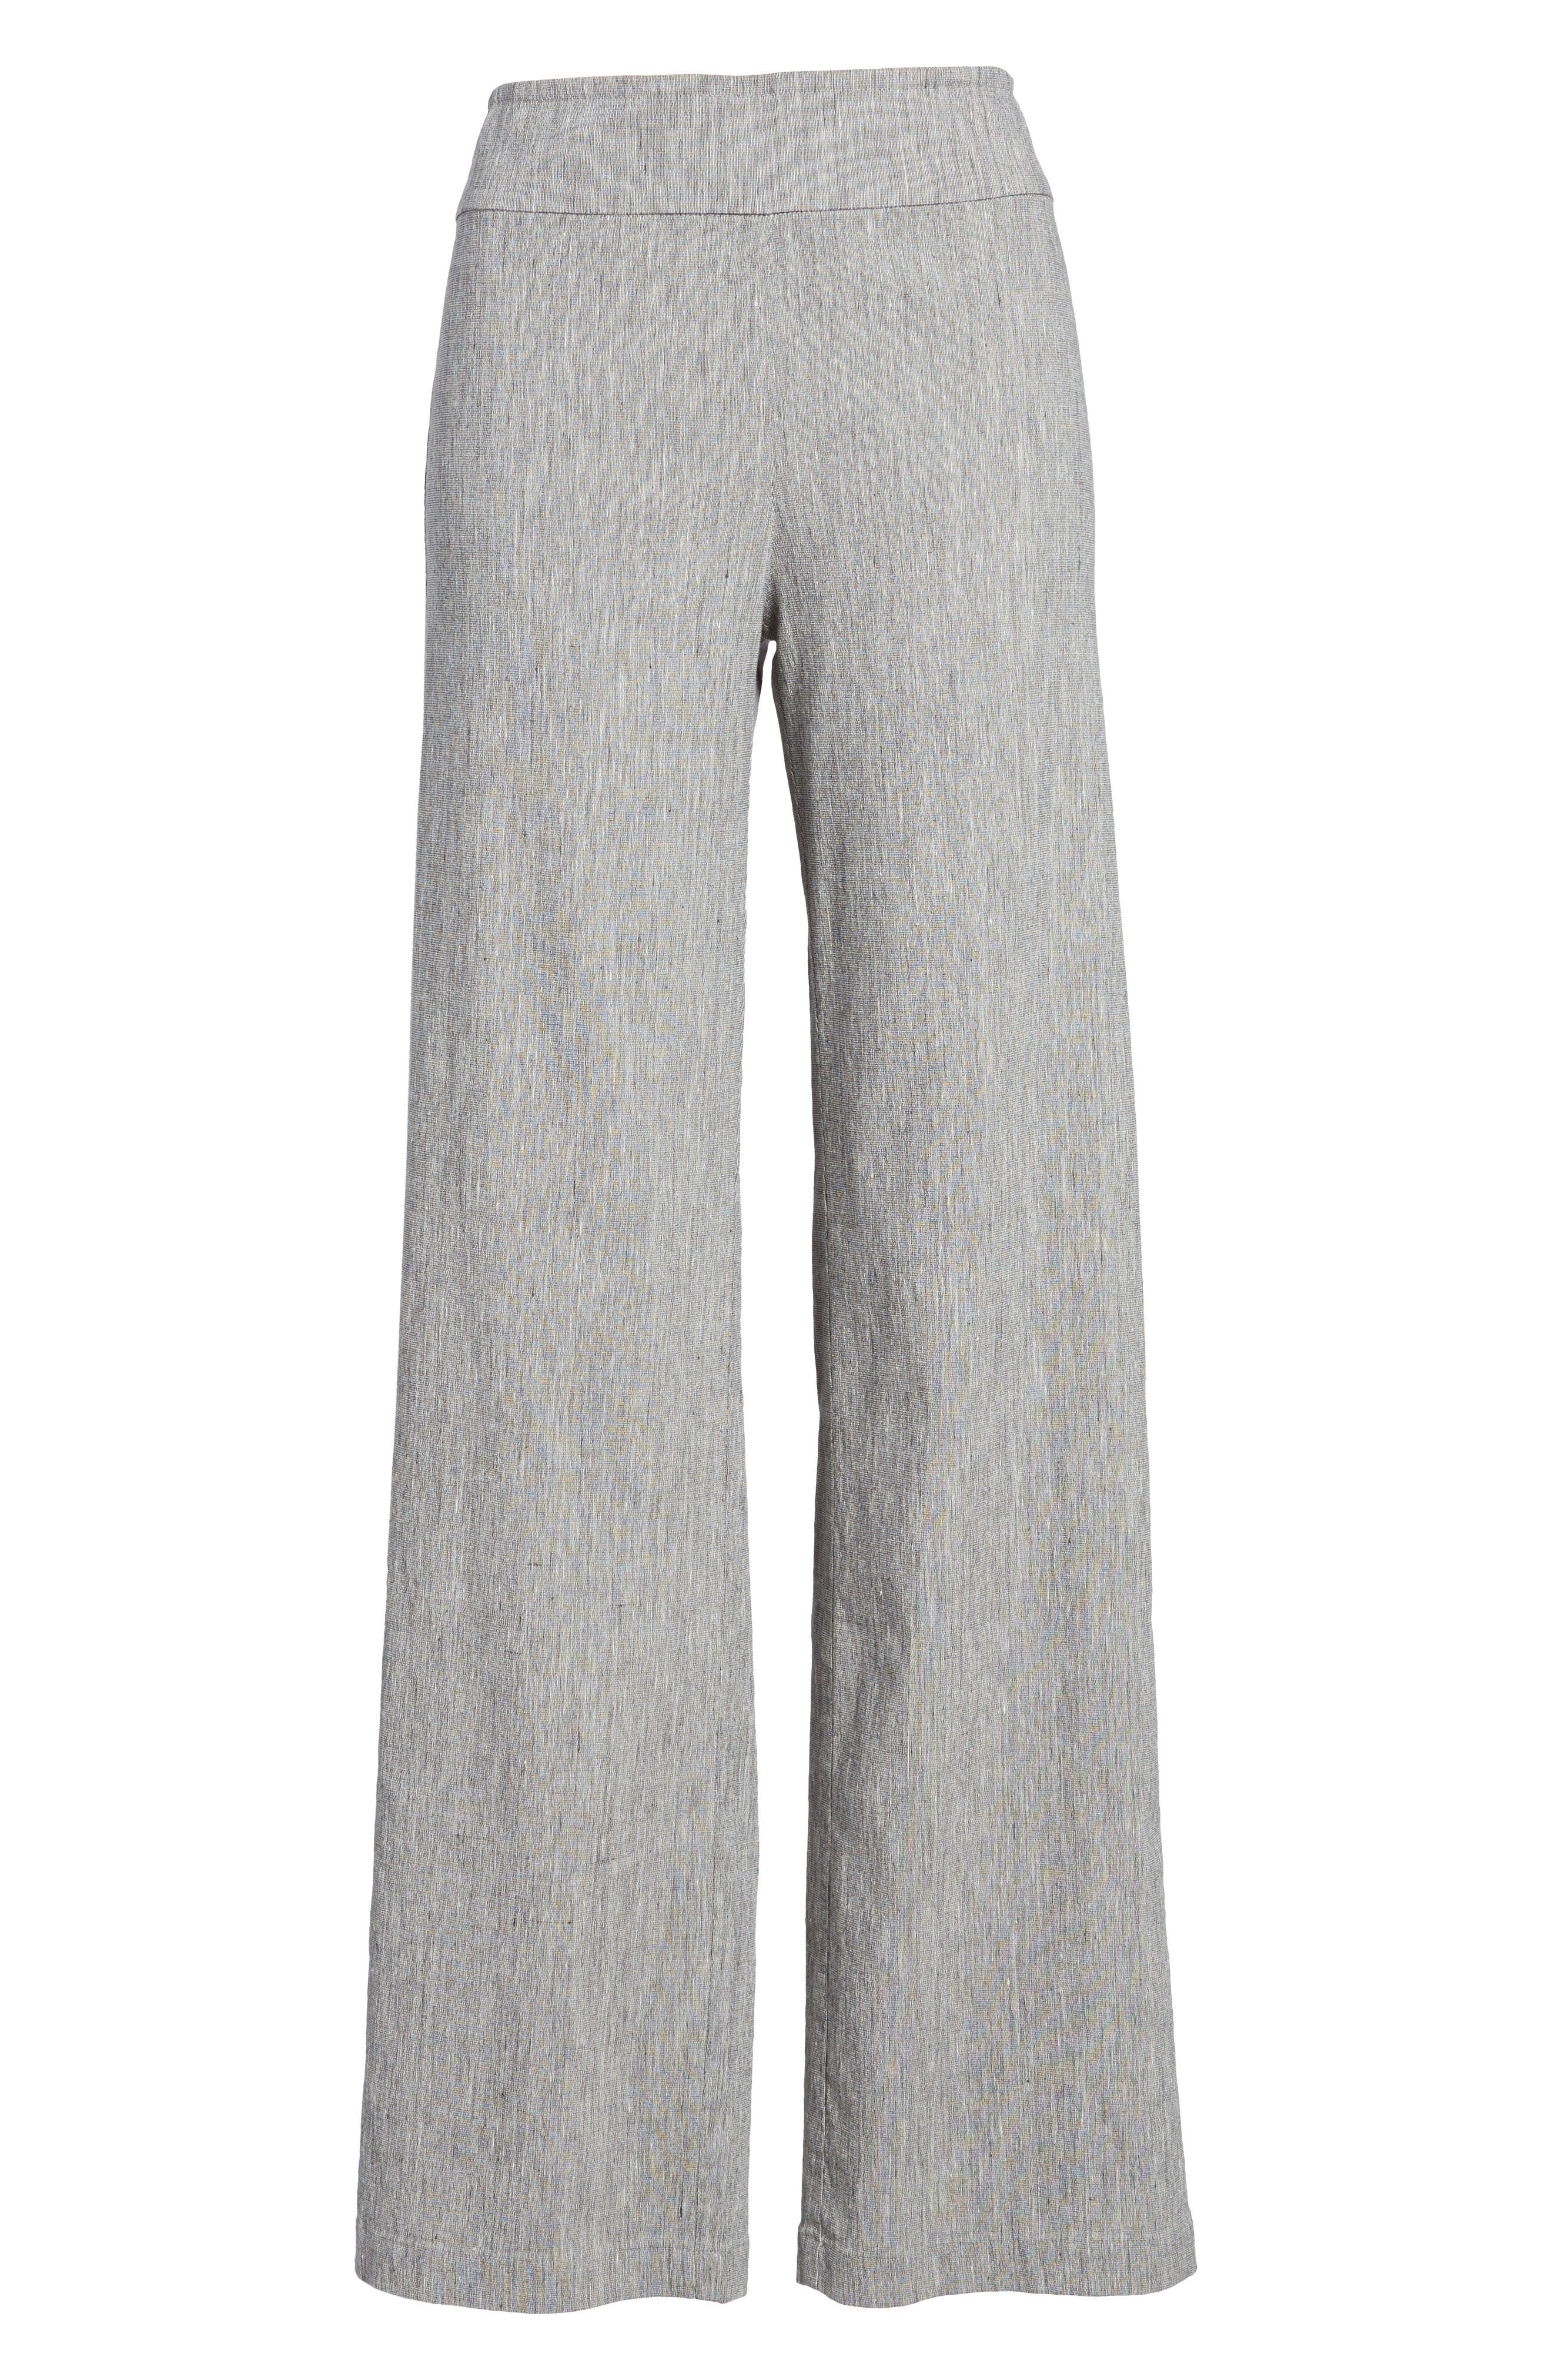 Here or There Linen Blend Pants,                             Alternate thumbnail 7, color,                             099